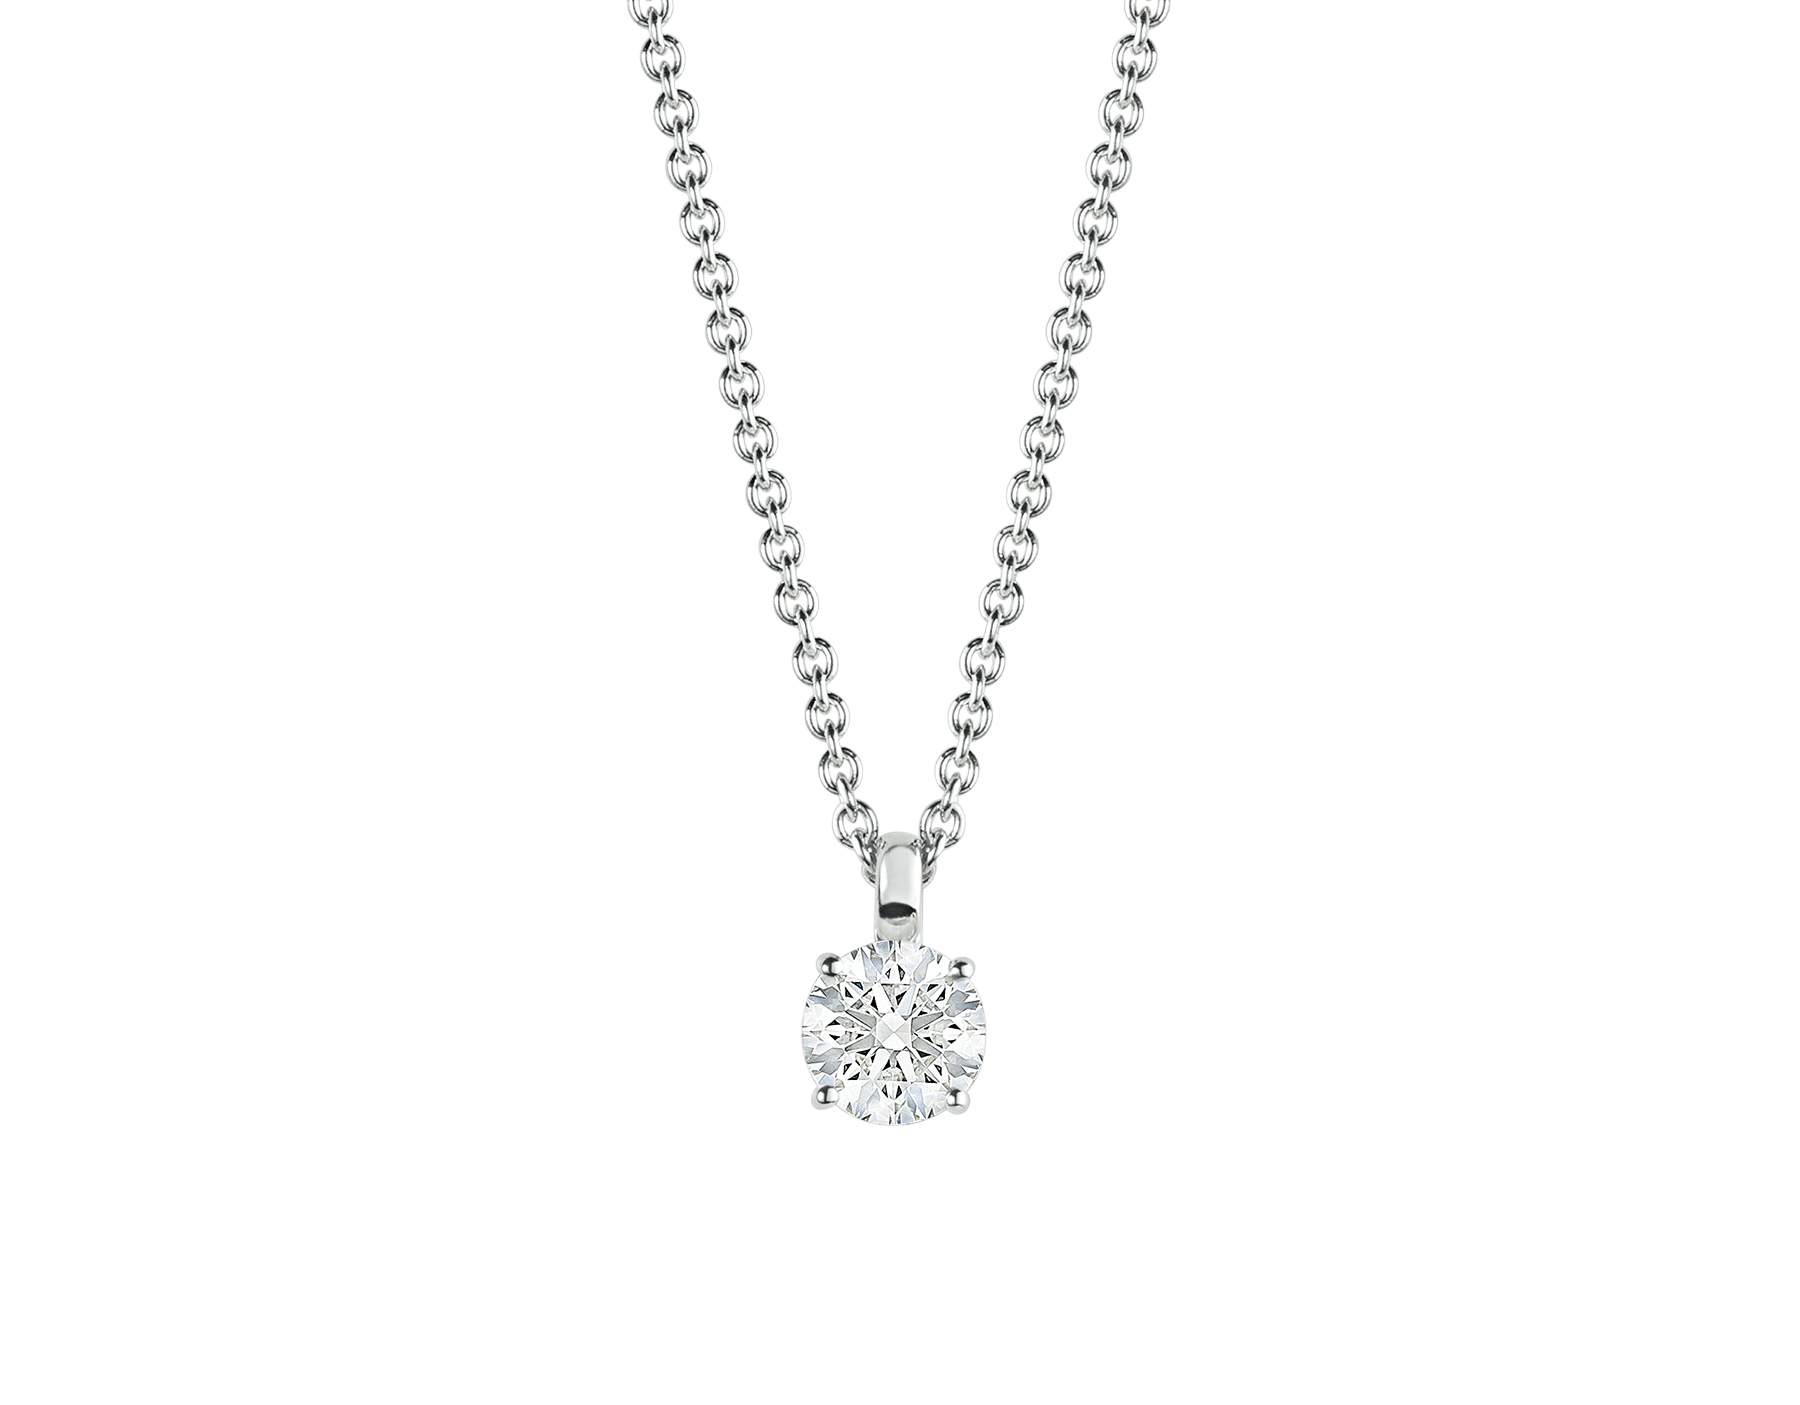 Griffe 18 kt white gold pendant with round brilliant cut diamond and 18 kt white gold chain 338201 image 1